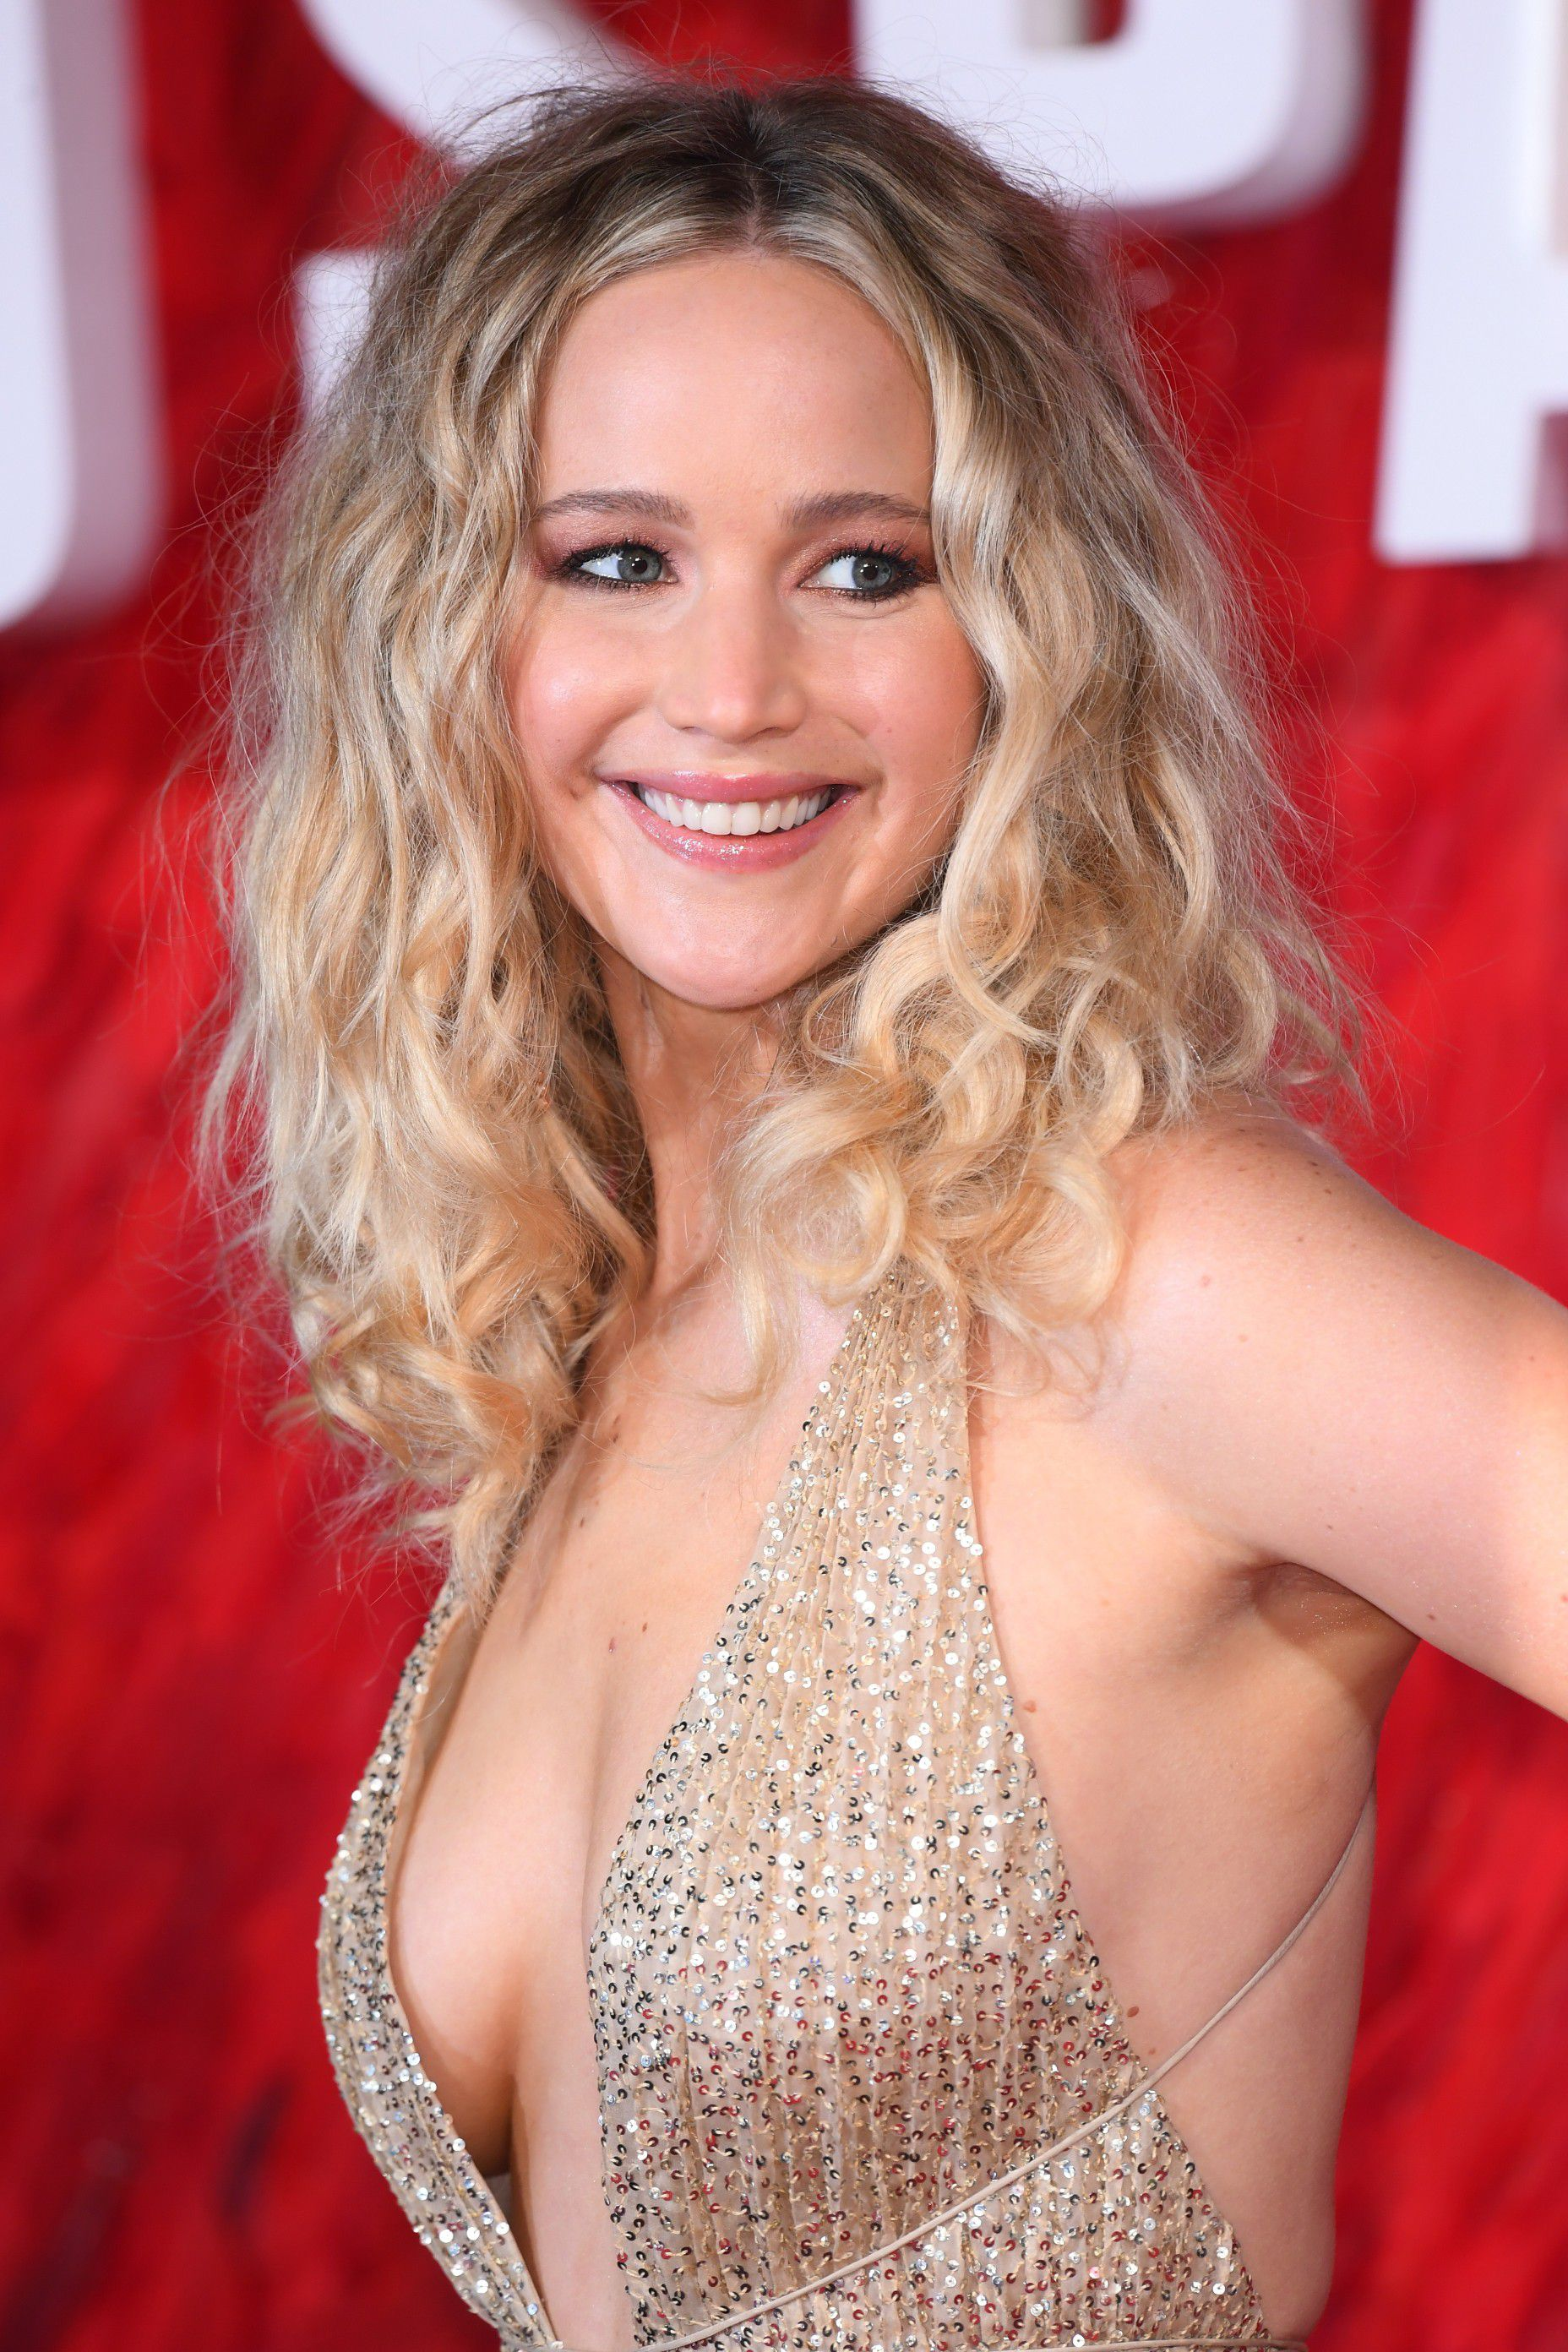 jennifer-lawrence-cleavage-at-red-sparrow-premiere-in-london-4114